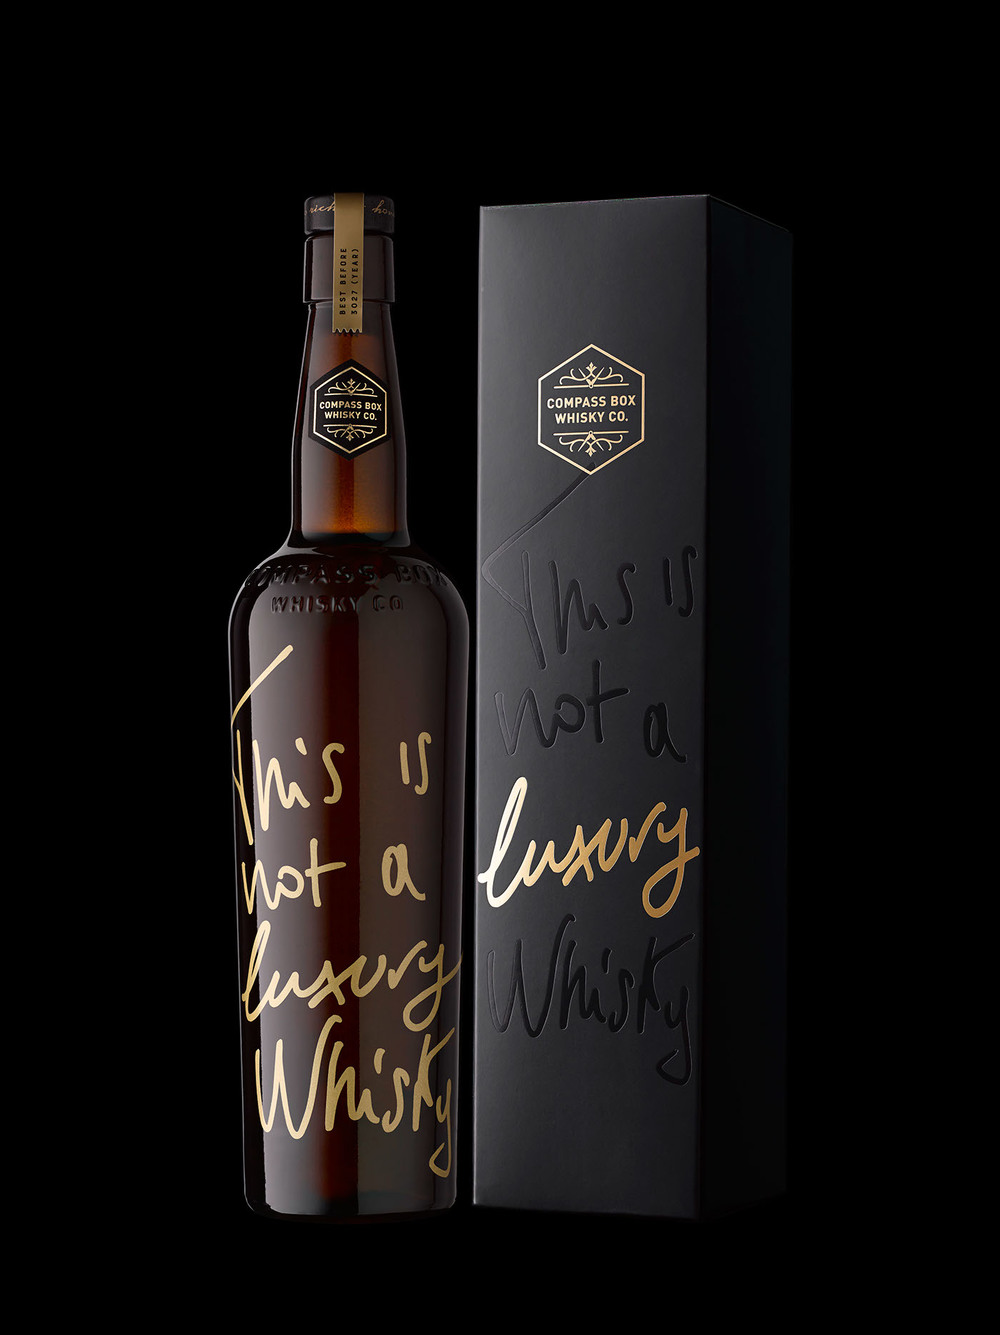 packages negative declarative branding beach stranger stranger s design for compass box whisky uses the emphatic negative statement this is not a luxury whisky the gold foil somehow suggesting